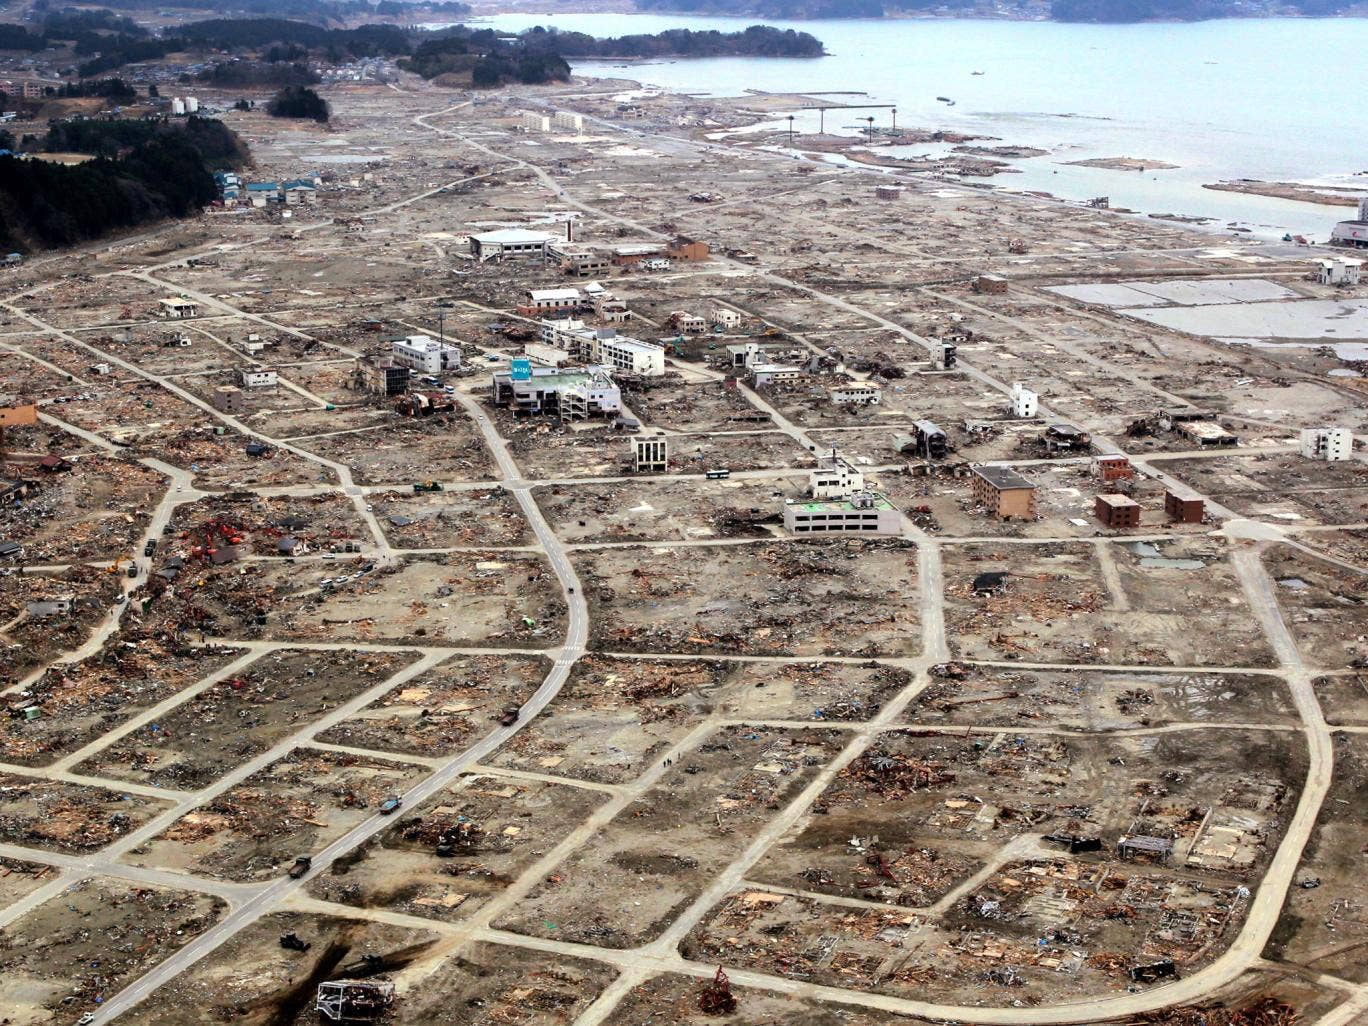 An aerial view of Rikuzentakata City a month after the earthquake